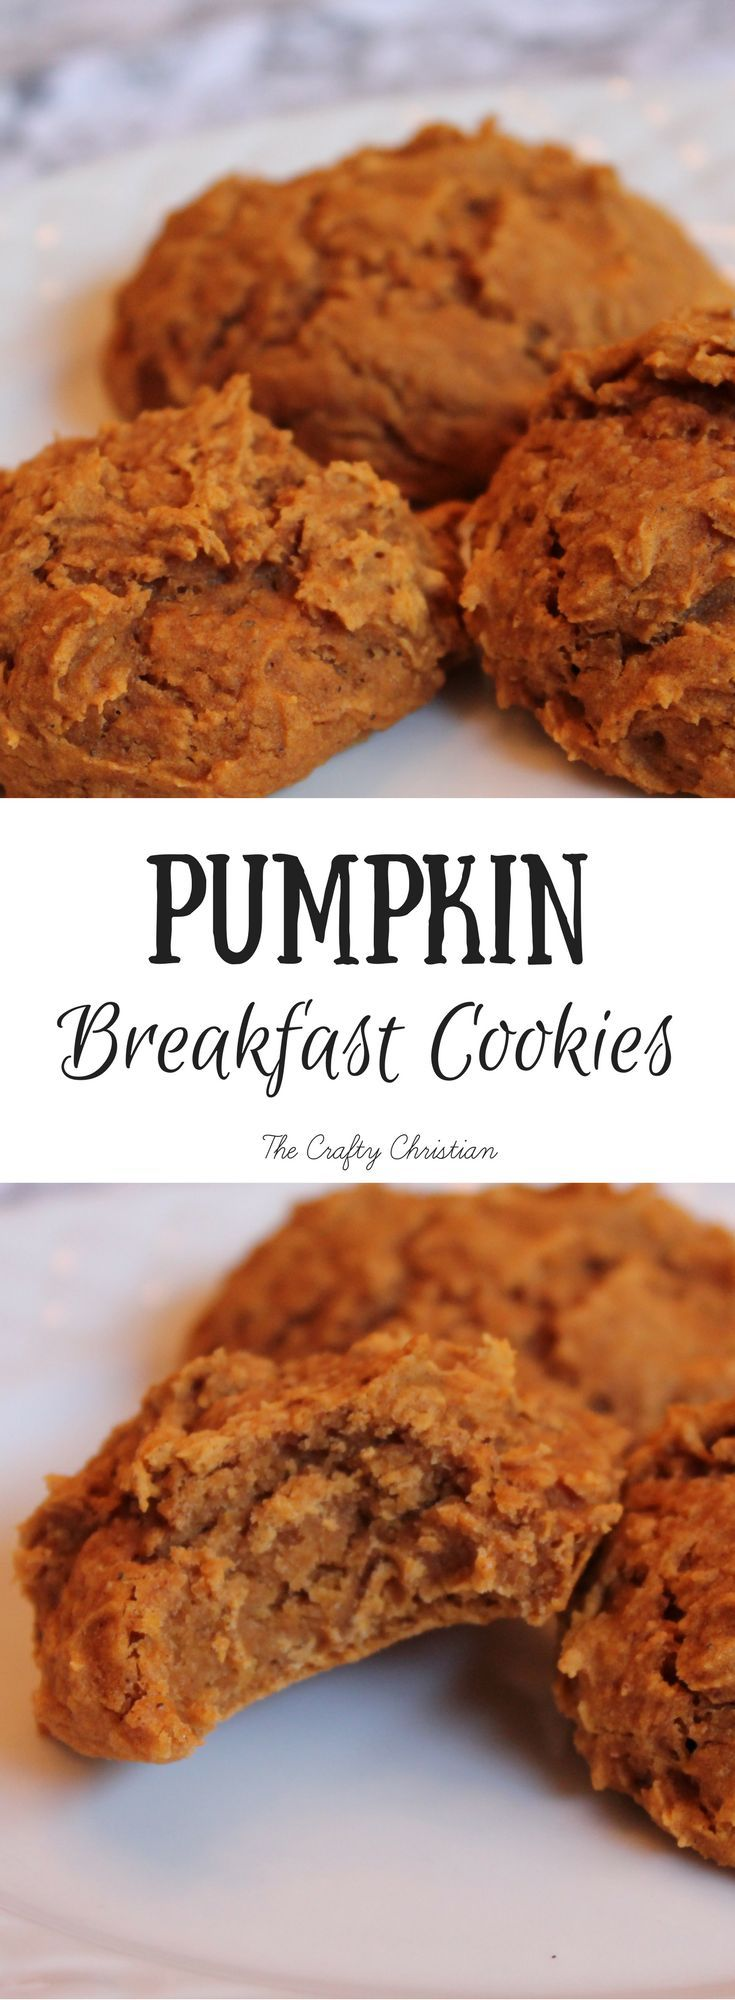 Pumpkin cookies are just about a rite of passage once Fall hits. But if you're…